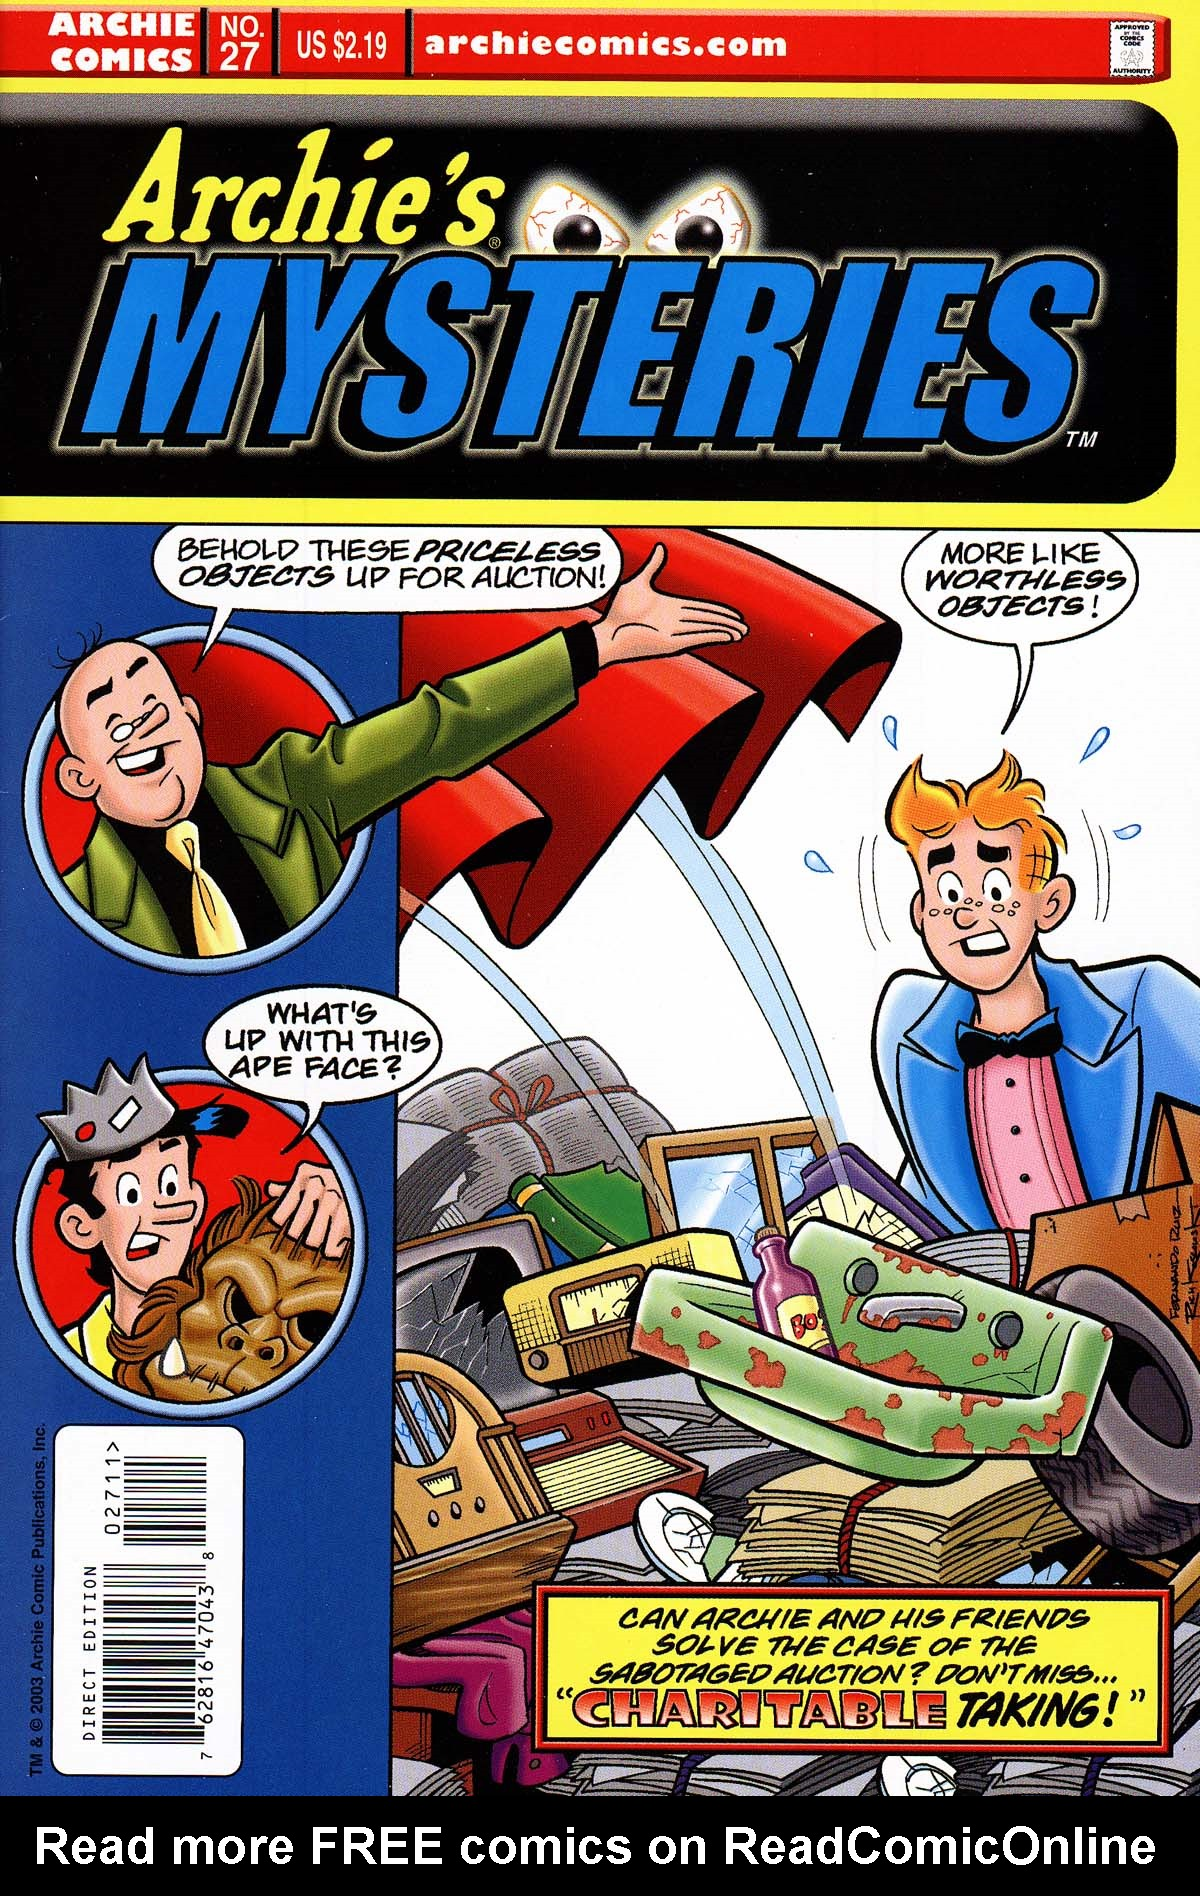 Read online Archie's Weird Mysteries comic -  Issue #27 - 1